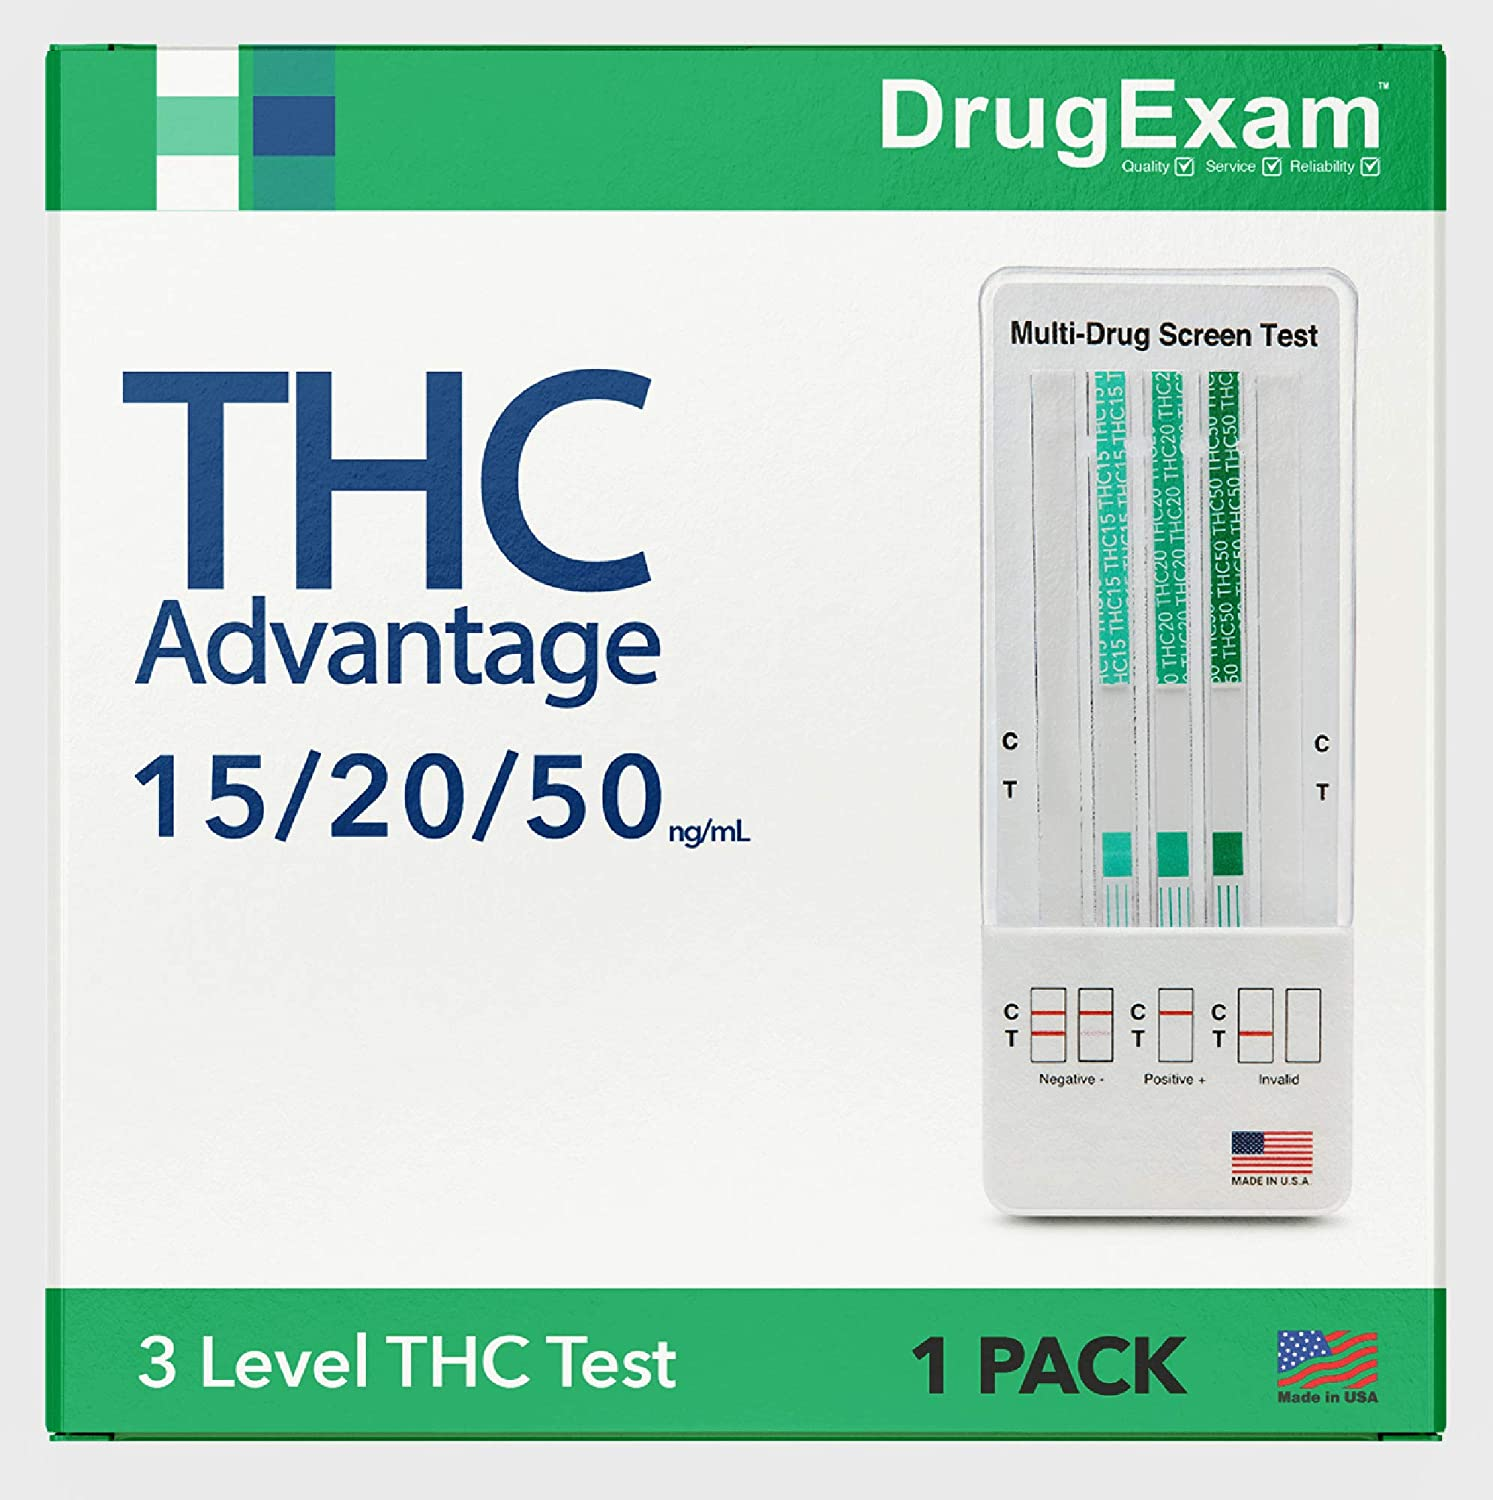 1 Pack - DrugExam THC Advantage Made in USA Multi Level Marijuana Home Urine Test. Highly Sensitive Marijuana THC 3 Level Drug Test Kit. Detects at 15 ng/mL, 20 ng/mL and 50 ng/mL (1)